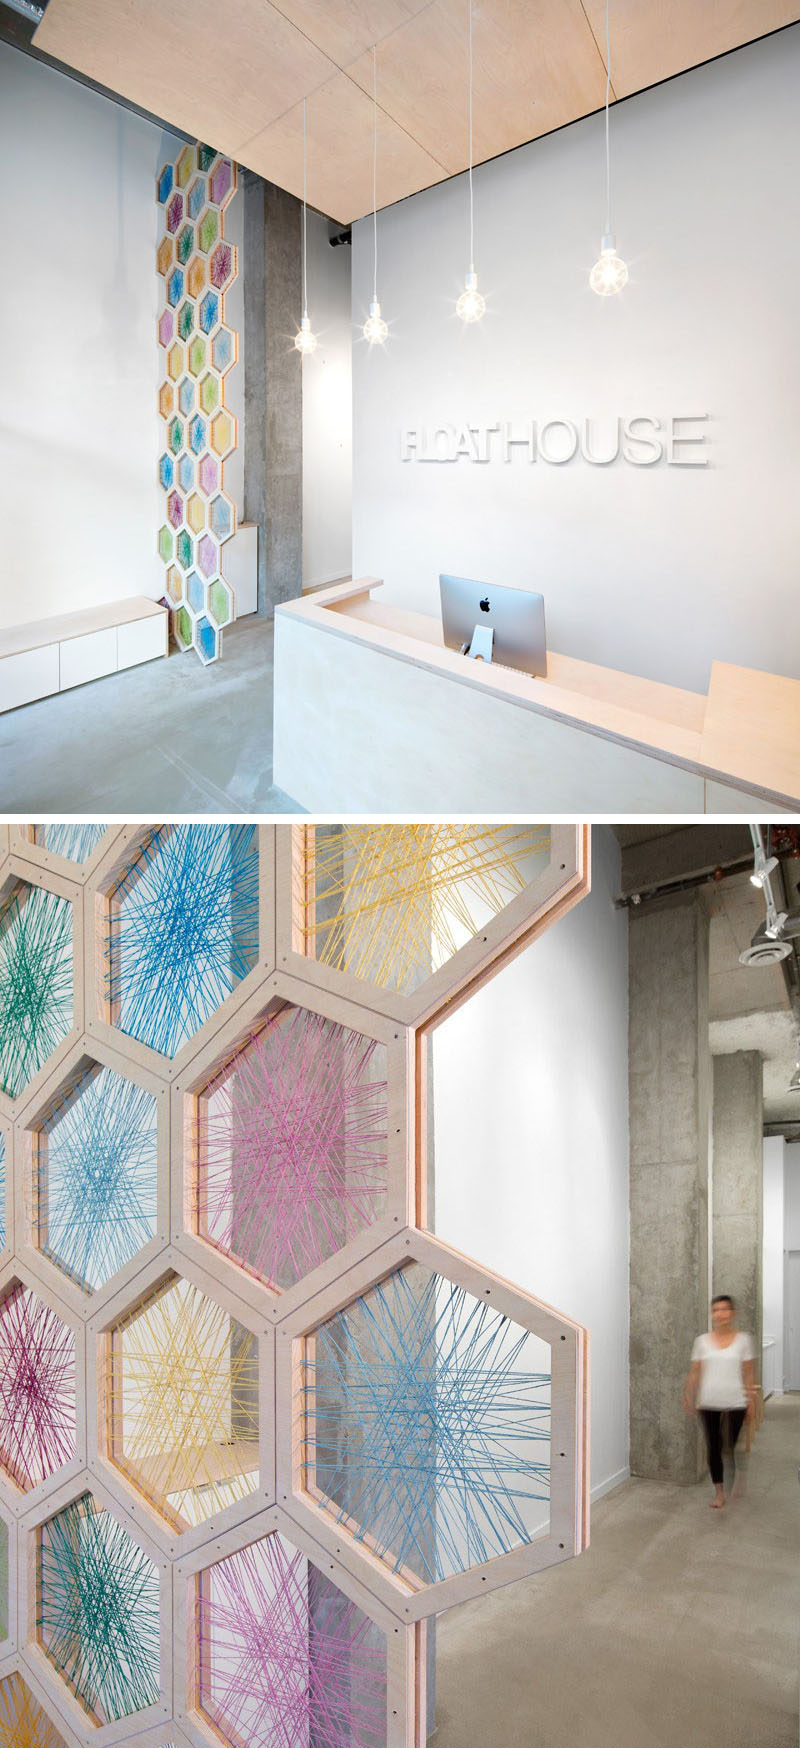 19 Ideas For Using Hexagons In Interior Design And Architecture // A 17 foot tall screen made from birchwood hexagons woven with colorful twine greets you as you enter the FloatHouse in Vancouver.